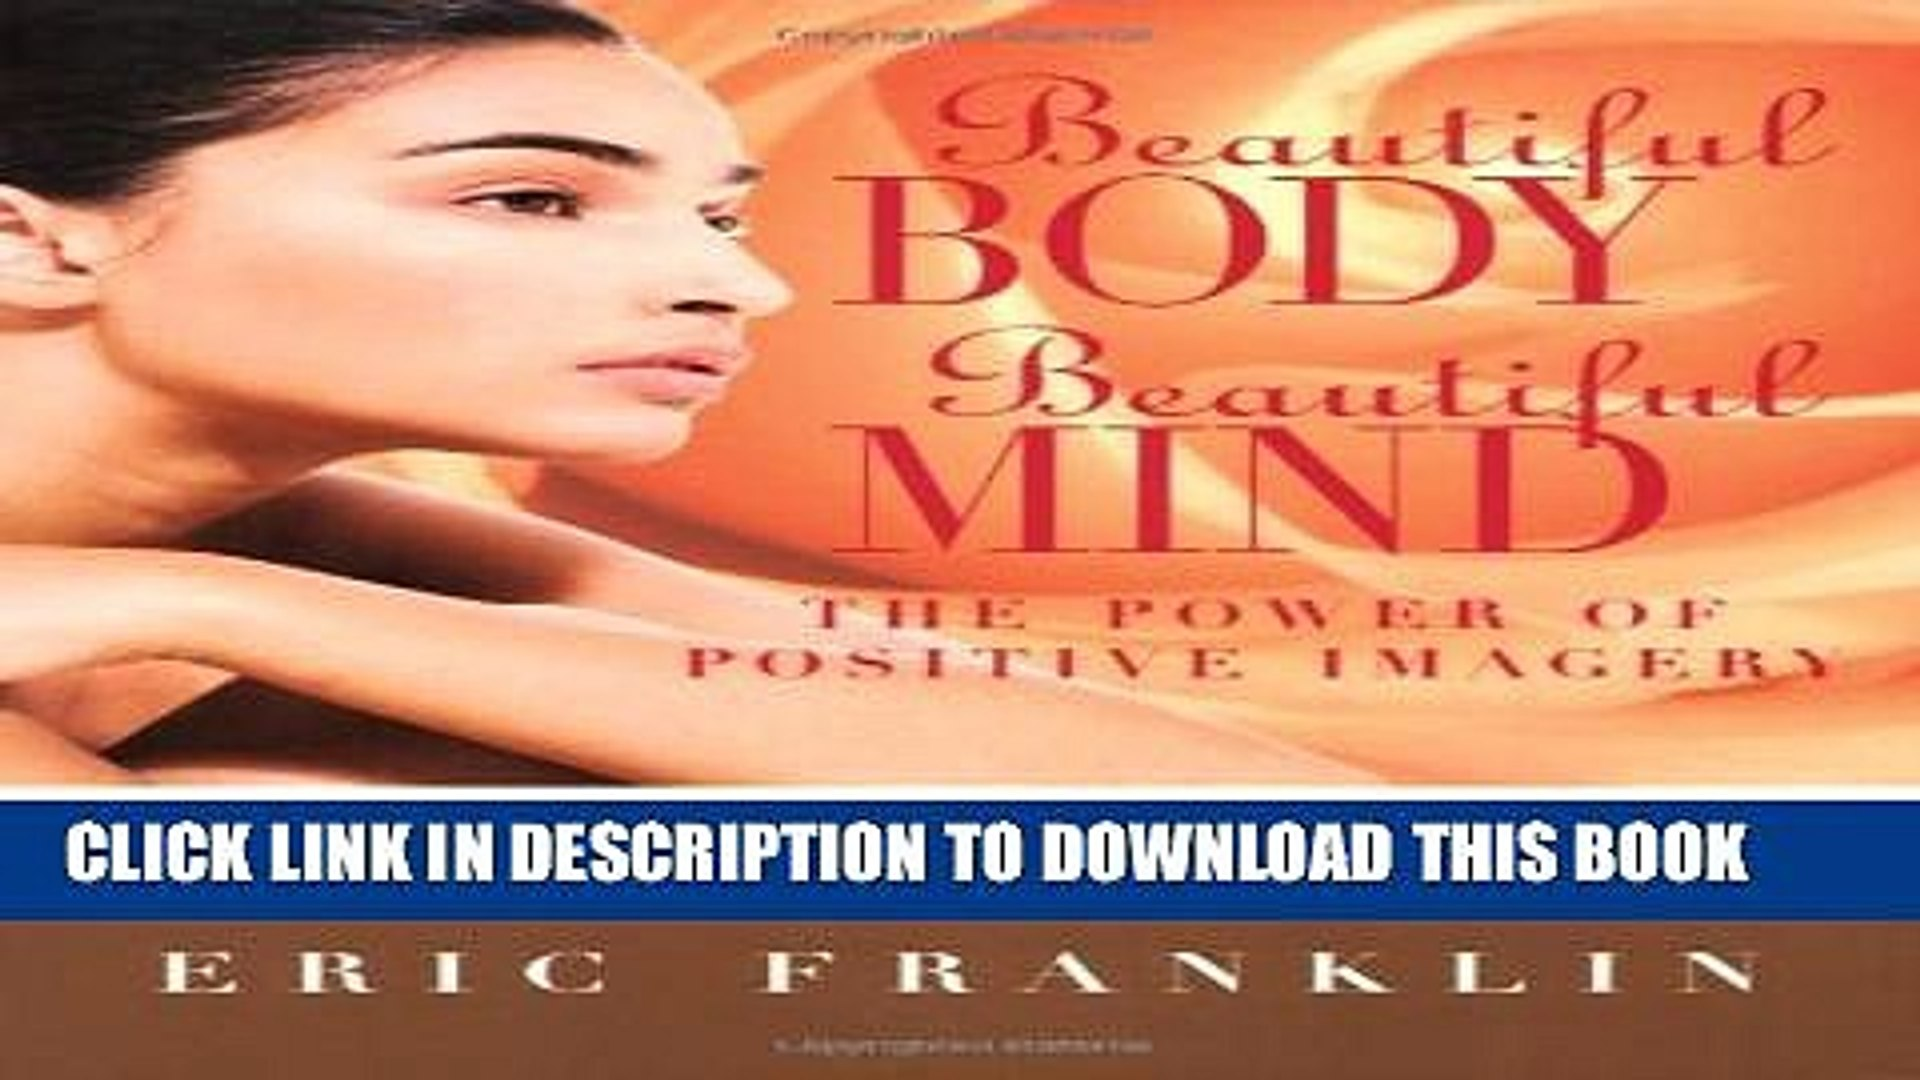 New Book Beautiful Body, Beautiful Mind: The Power of Positive Imagery: Over 80 Exercises and a